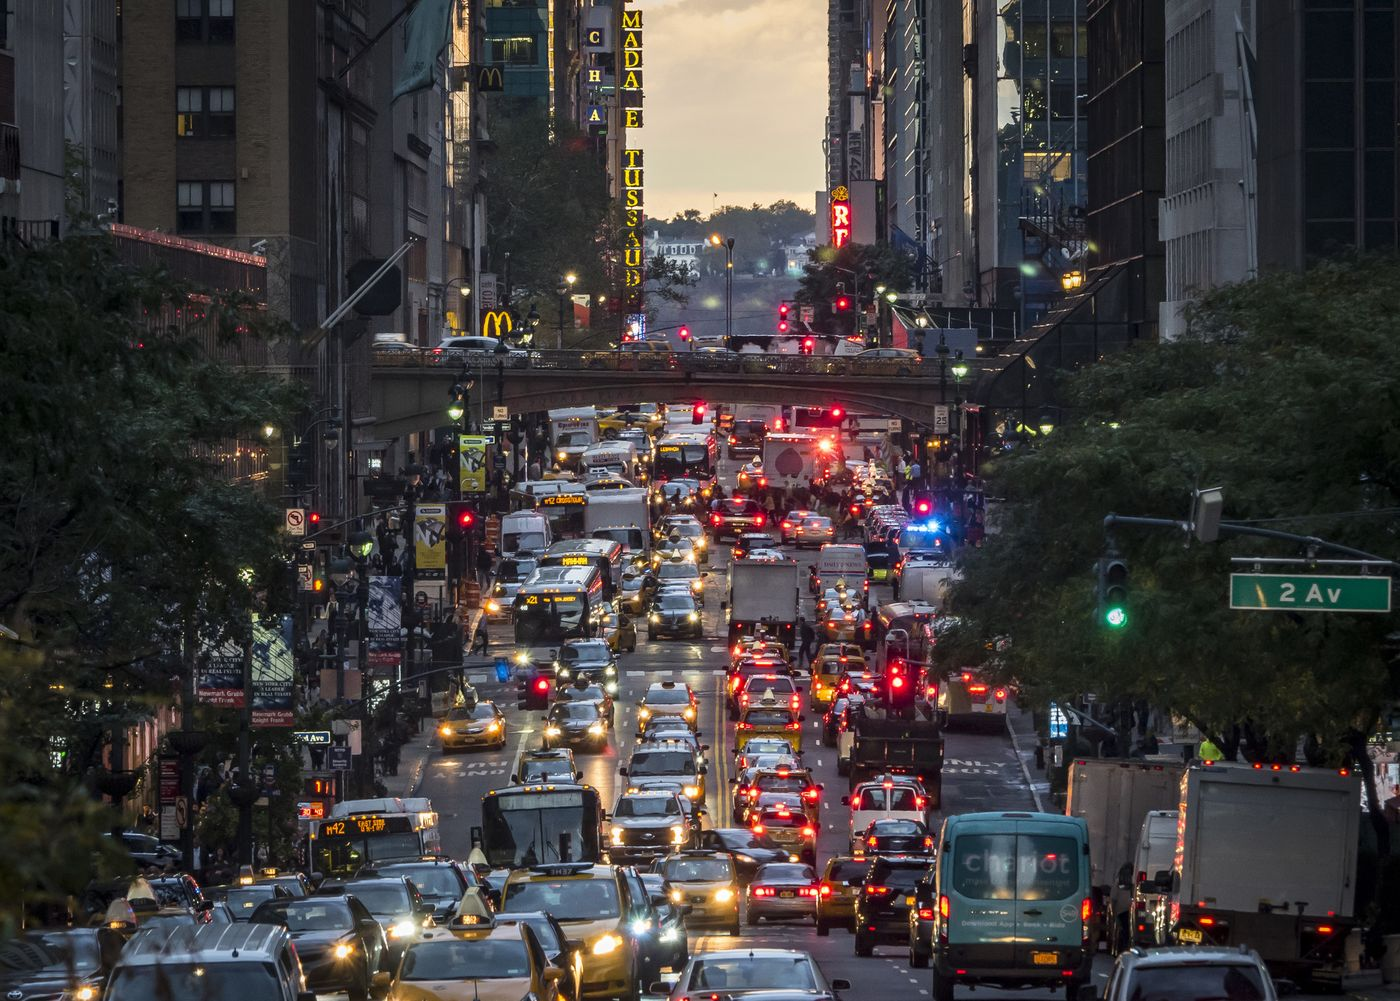 Gridlock alert days coming to NYC